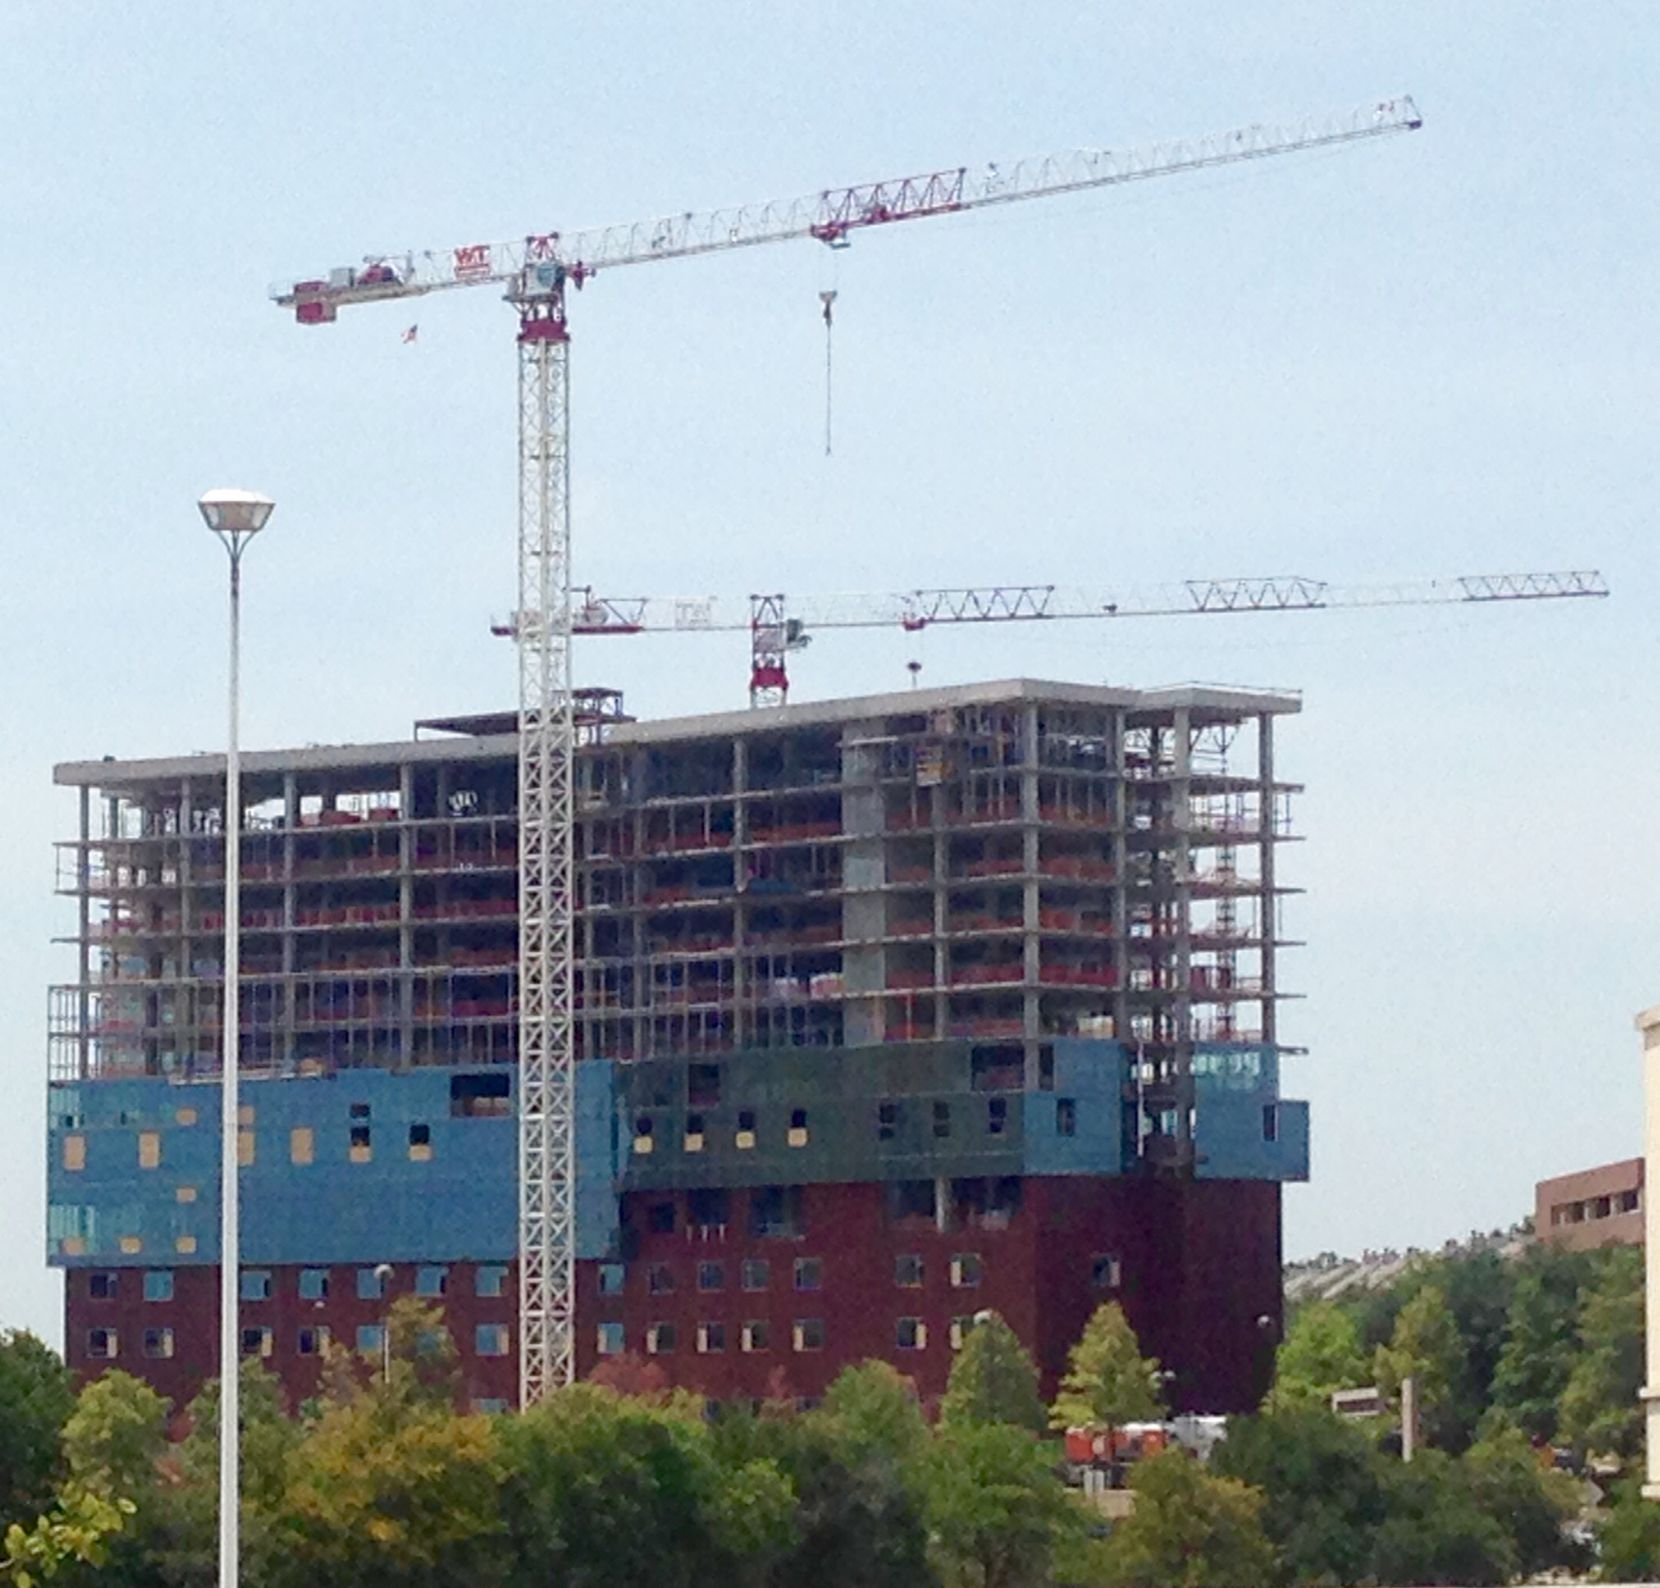 The Ventana senior living project is being built at the southwest corner of U.S. 75 and Northwest Highway.